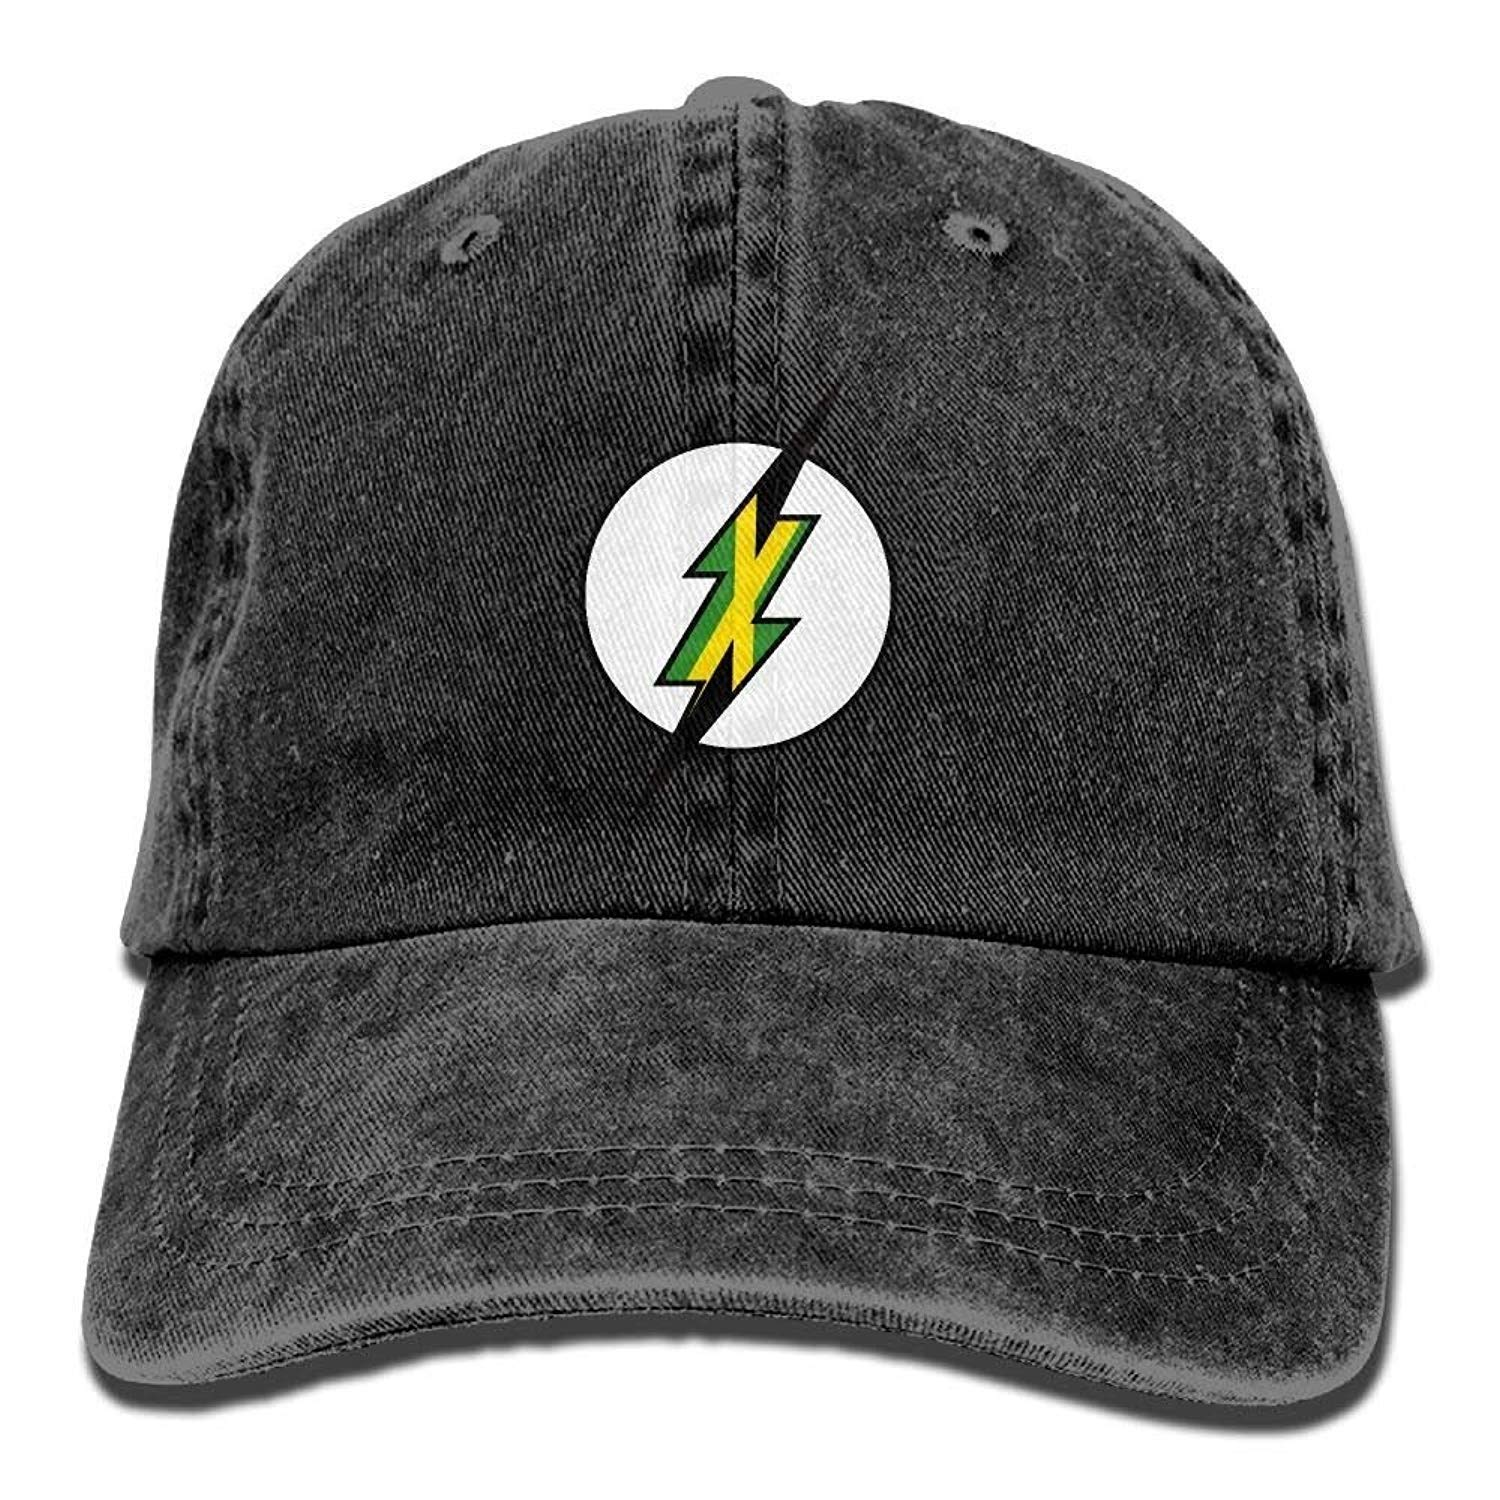 JTRVW Jamaica Adult Cowboy Hat Baseball Cap Adjustable Athletic Making Awesome Hat for Men and Women